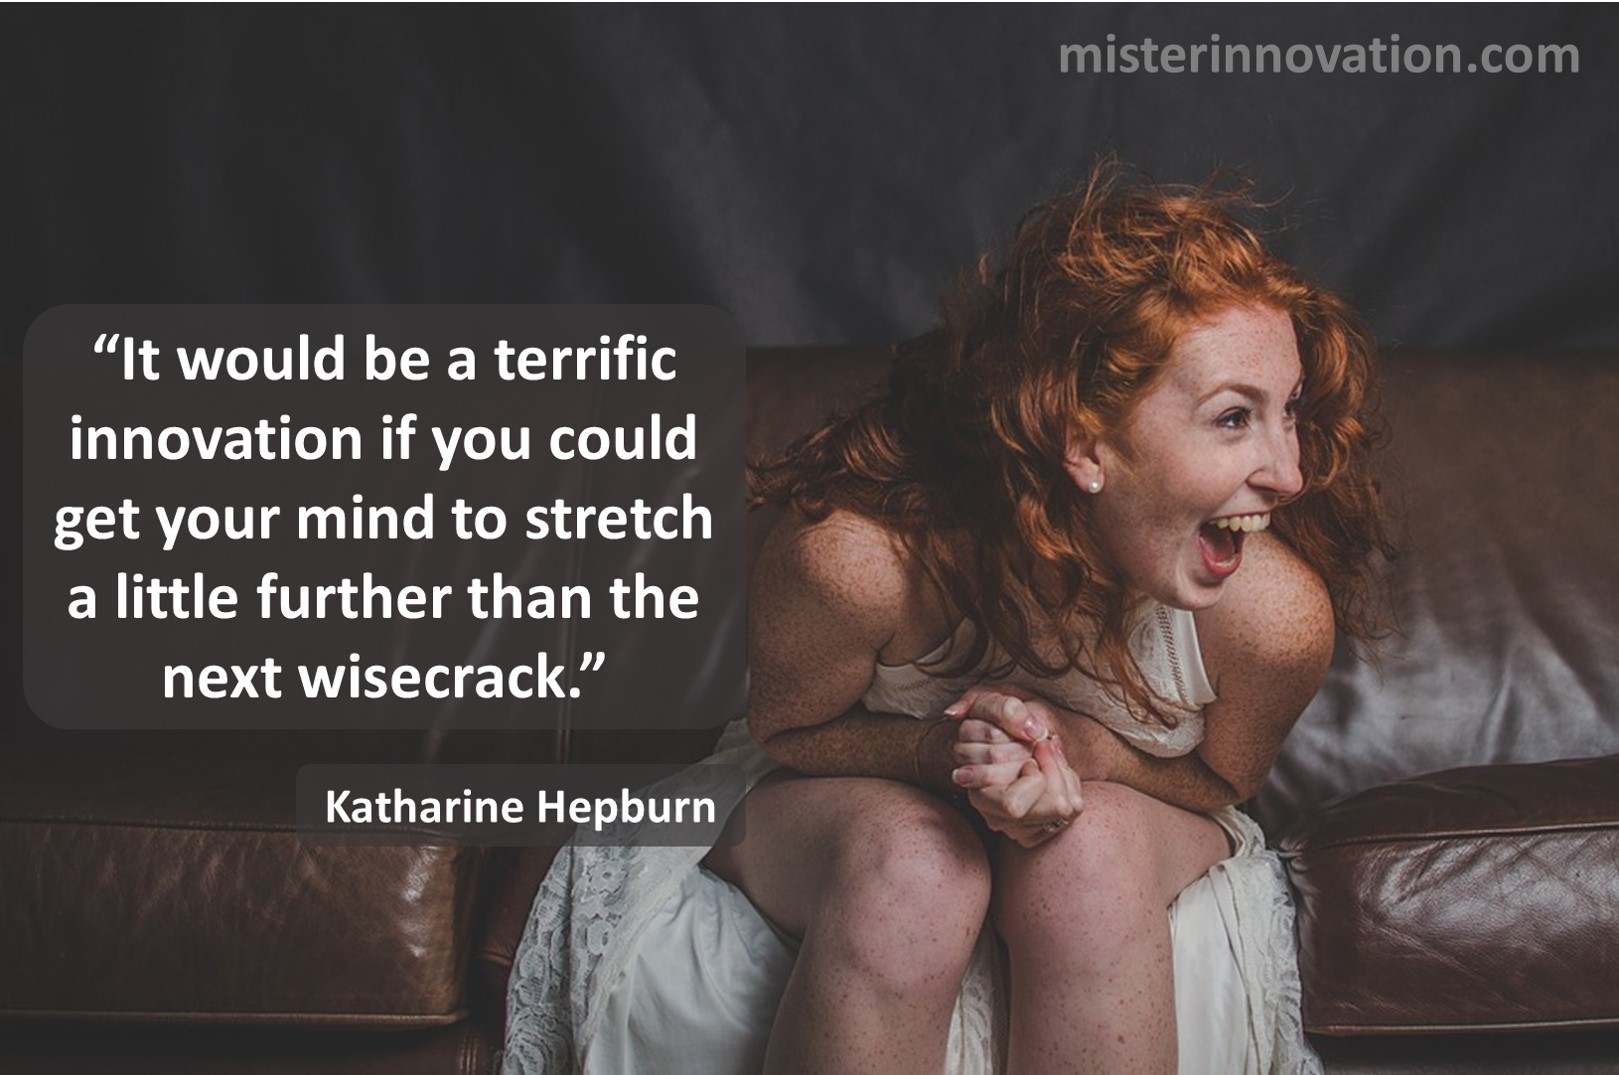 Katharine Hepburn Quote on Innovation Mind Stretching and Wisecracks